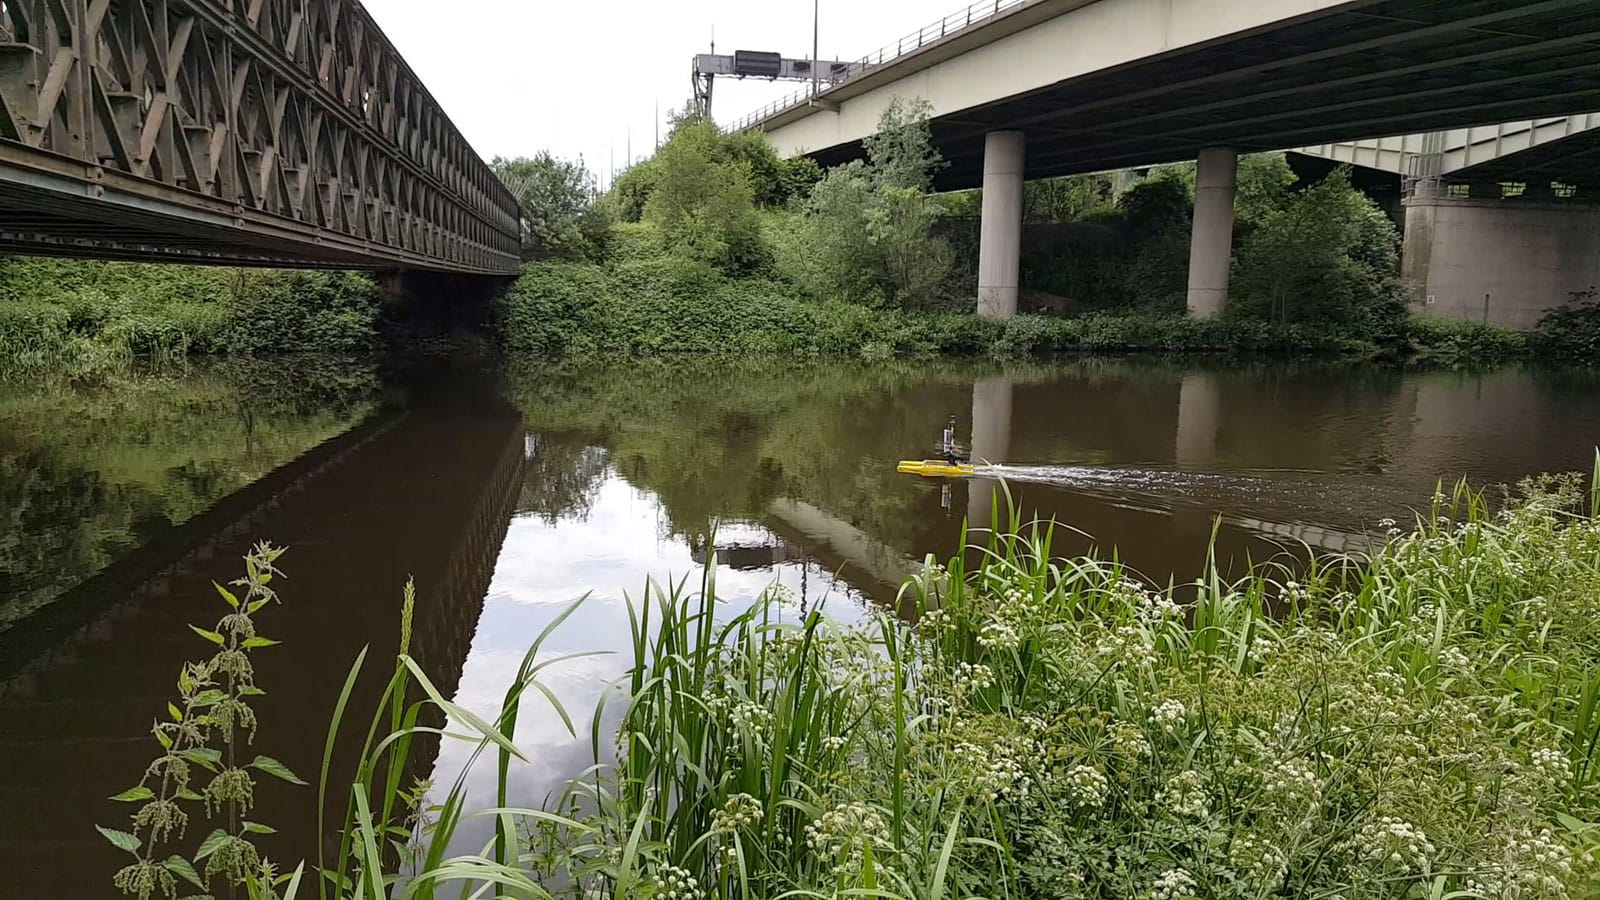 Surveying a river under the Thelwall Viaduct.